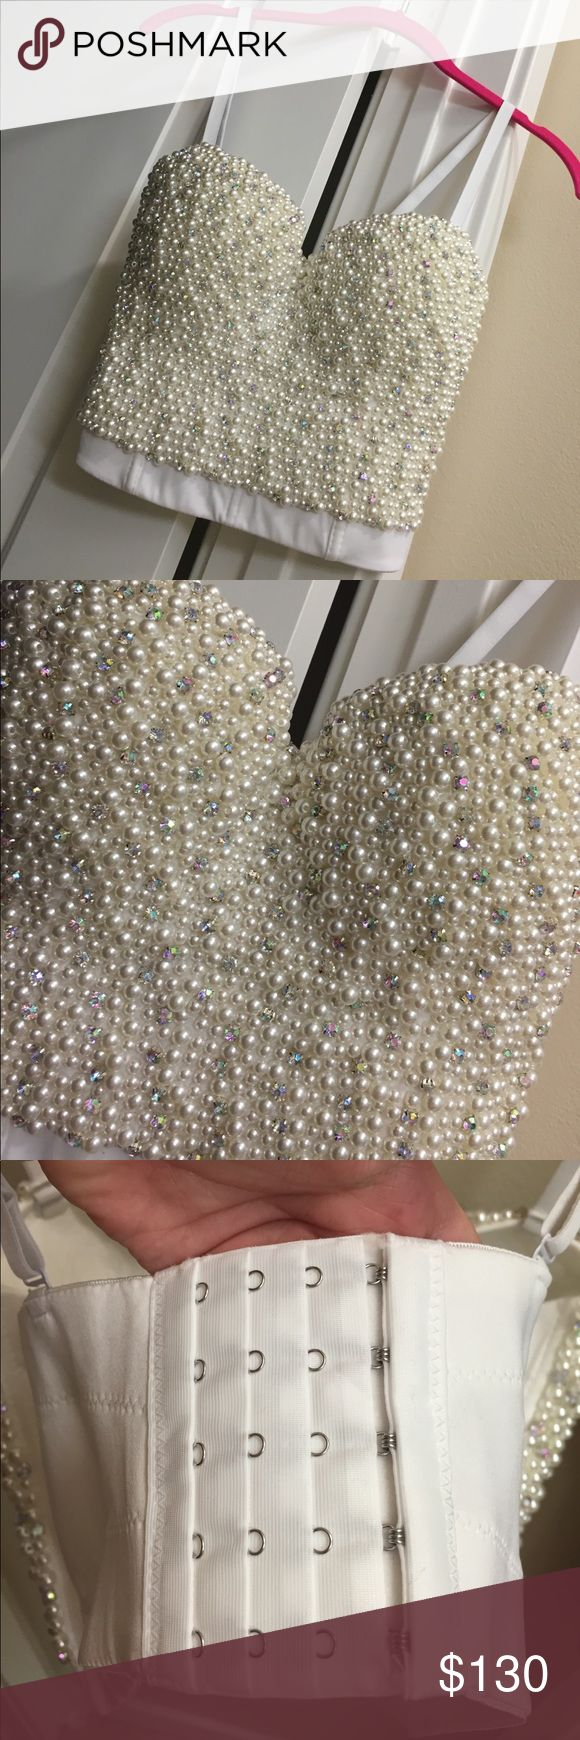 BRAND NEW pearl and rhinestone bralette balconet BRAND NEW pearl and rhinestone balconett brallete super shiny and gorgeous!!!! Size xl! Has a bra like back. Stunning!!!! Front is completely beaded! White and iridescent rhinestones Tops